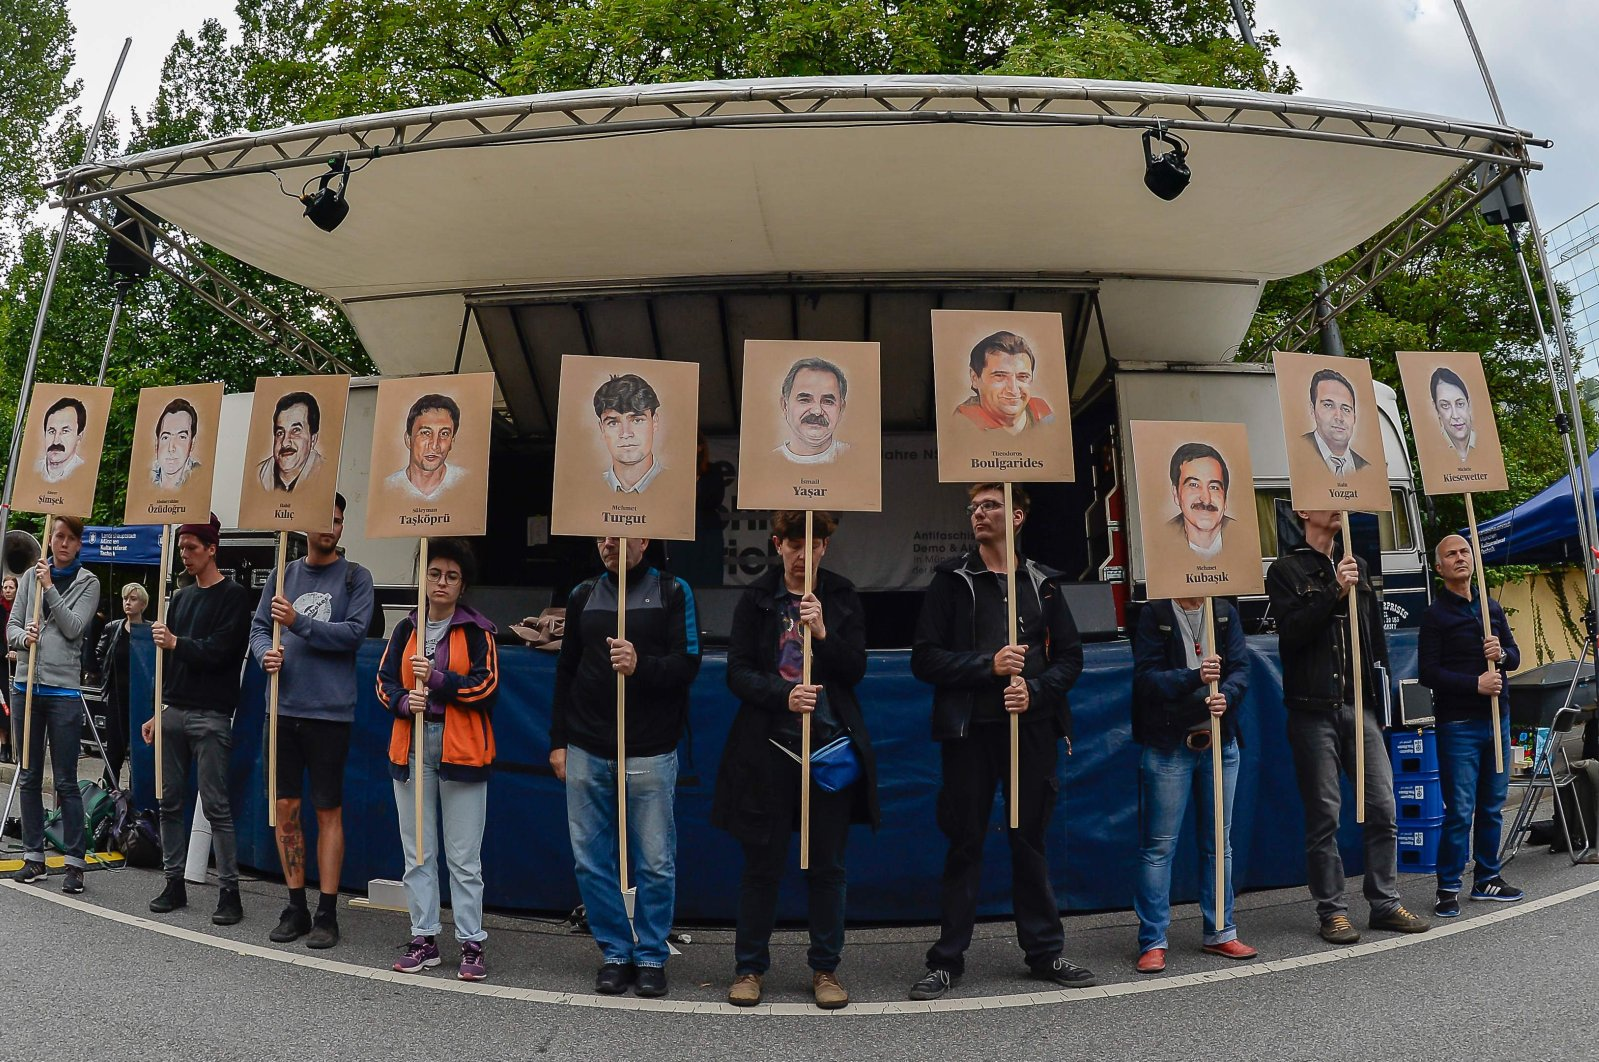 Protesters hold up signs with pictures of the victims of the neo-Nazi cell National Socialist Underground (NSU) before the proclamation of the sentence in the trial against Beate Zschaepe, the only surviving member of the NSU behind a string of racist murders, in Munich, Germany, July 11, 2018. (AFP Photo)